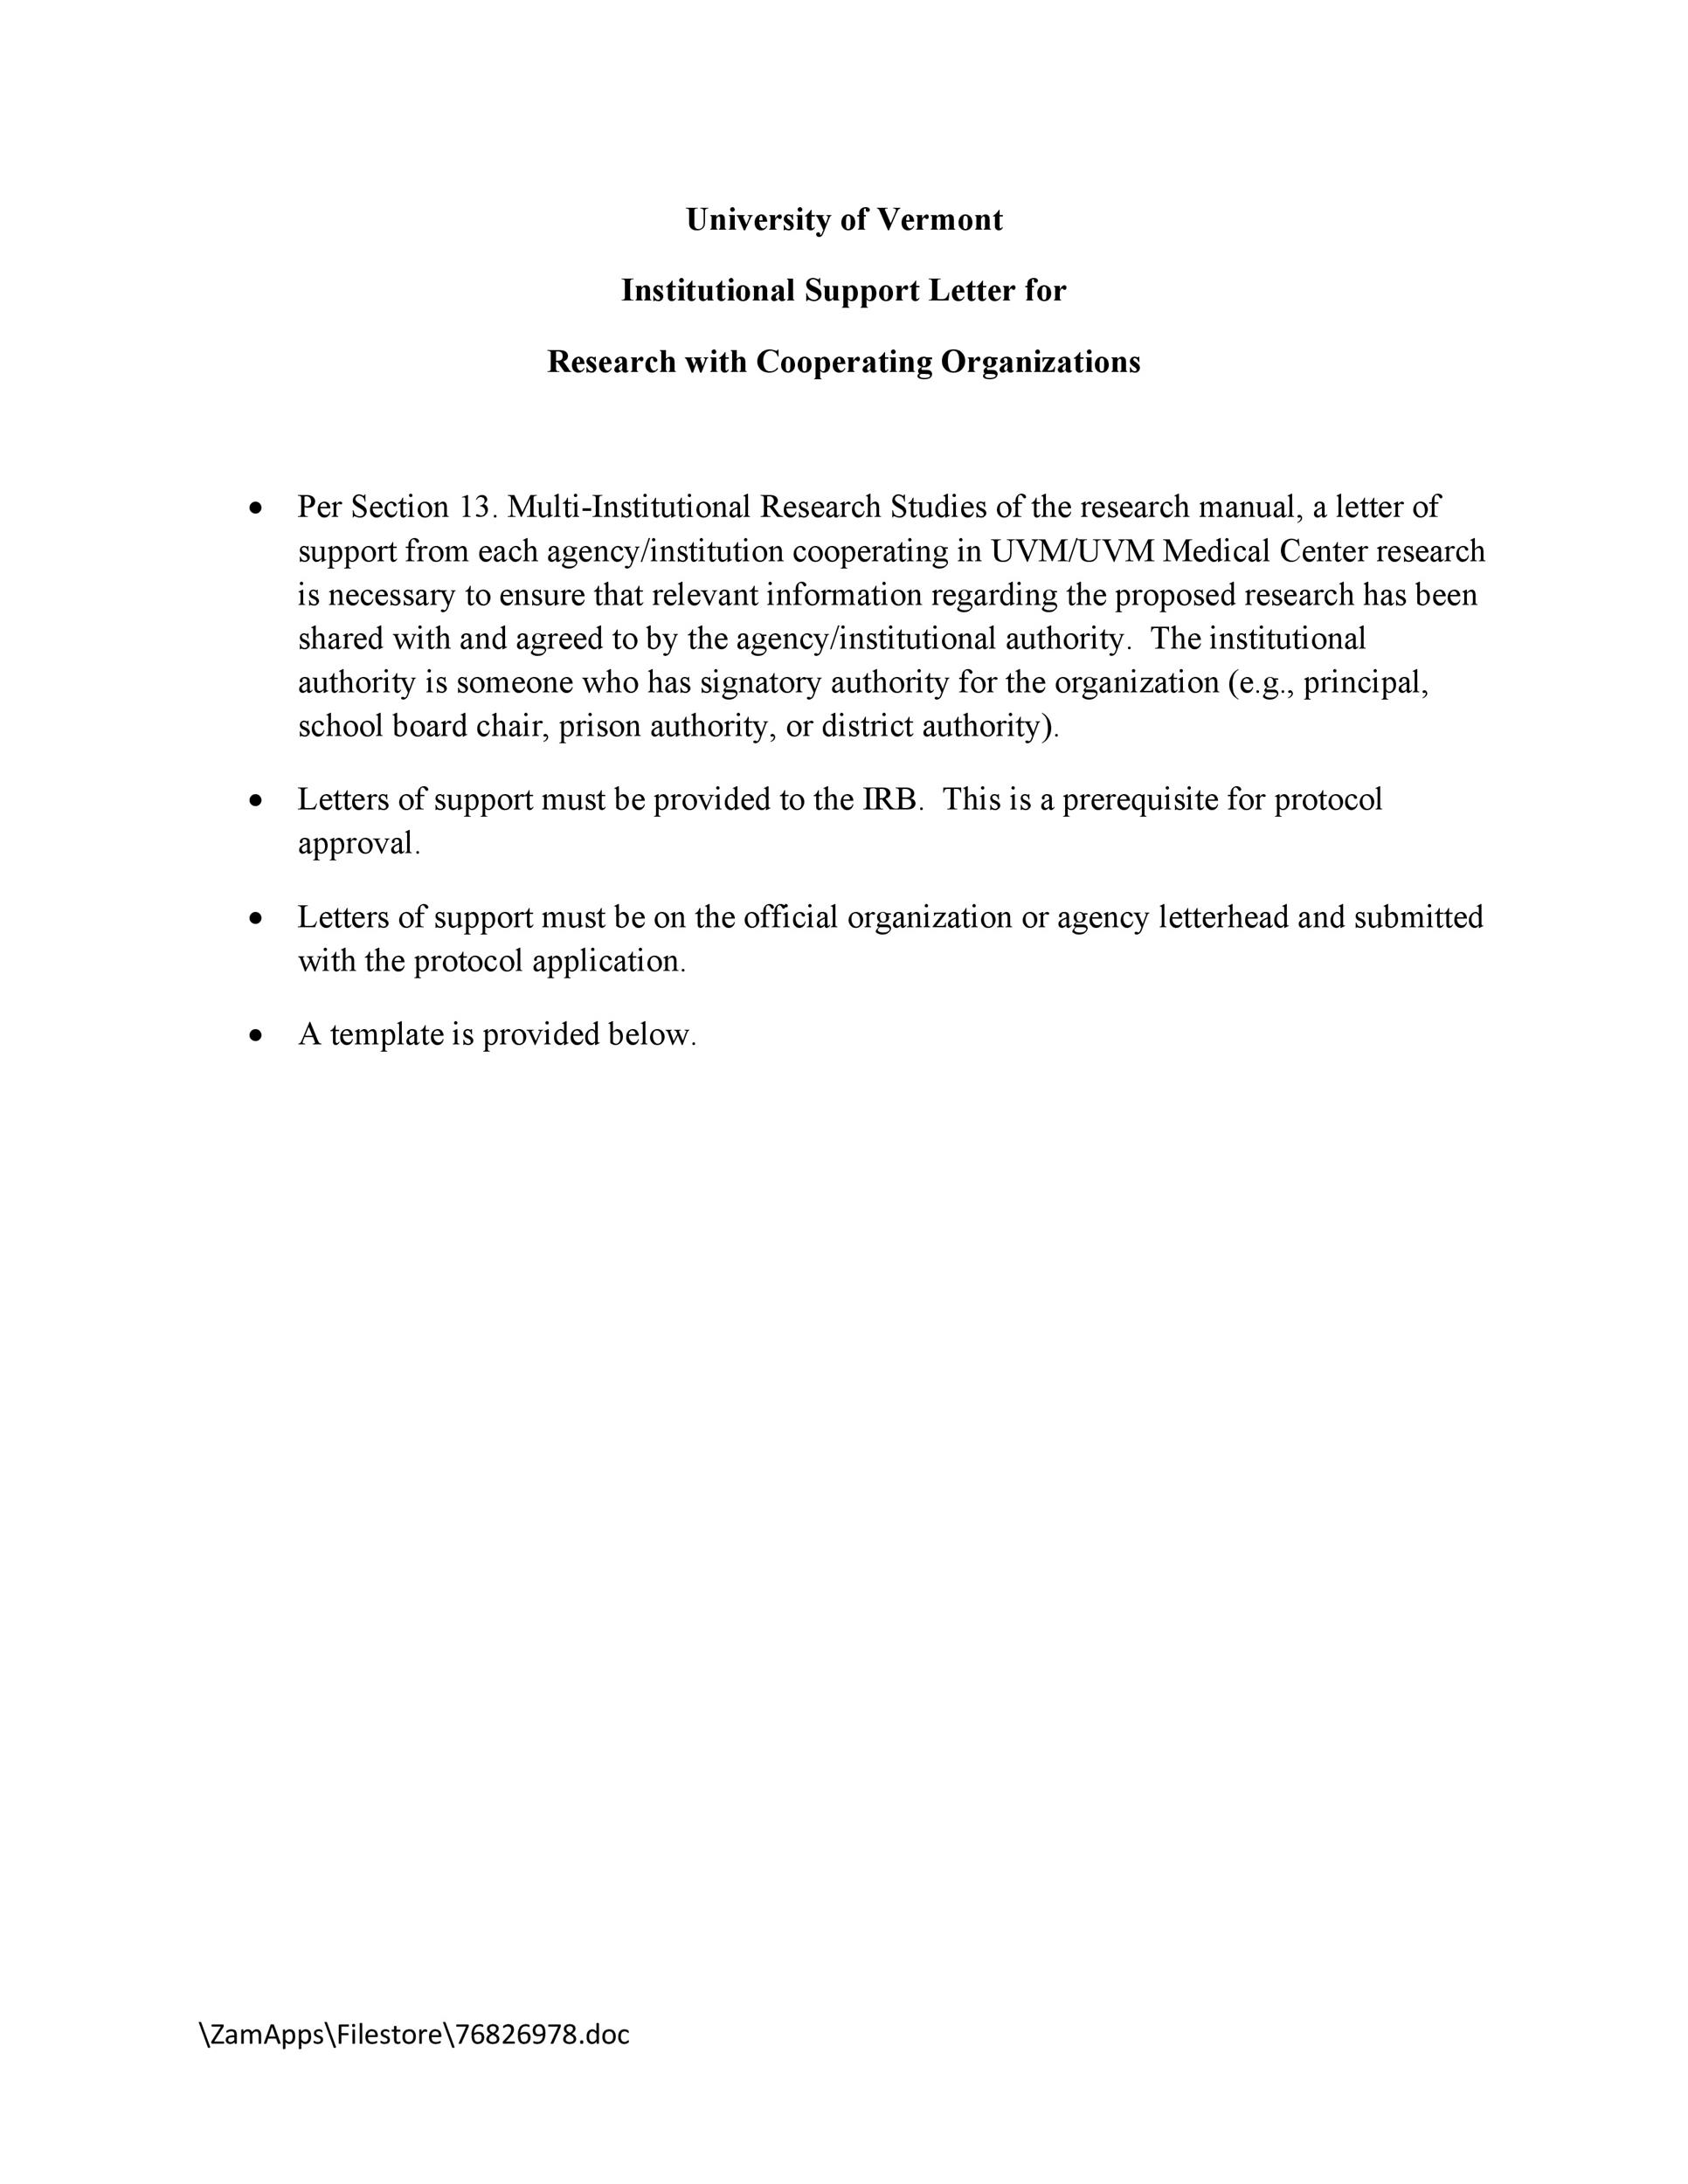 Letter Of Support Templates from templatelab.com